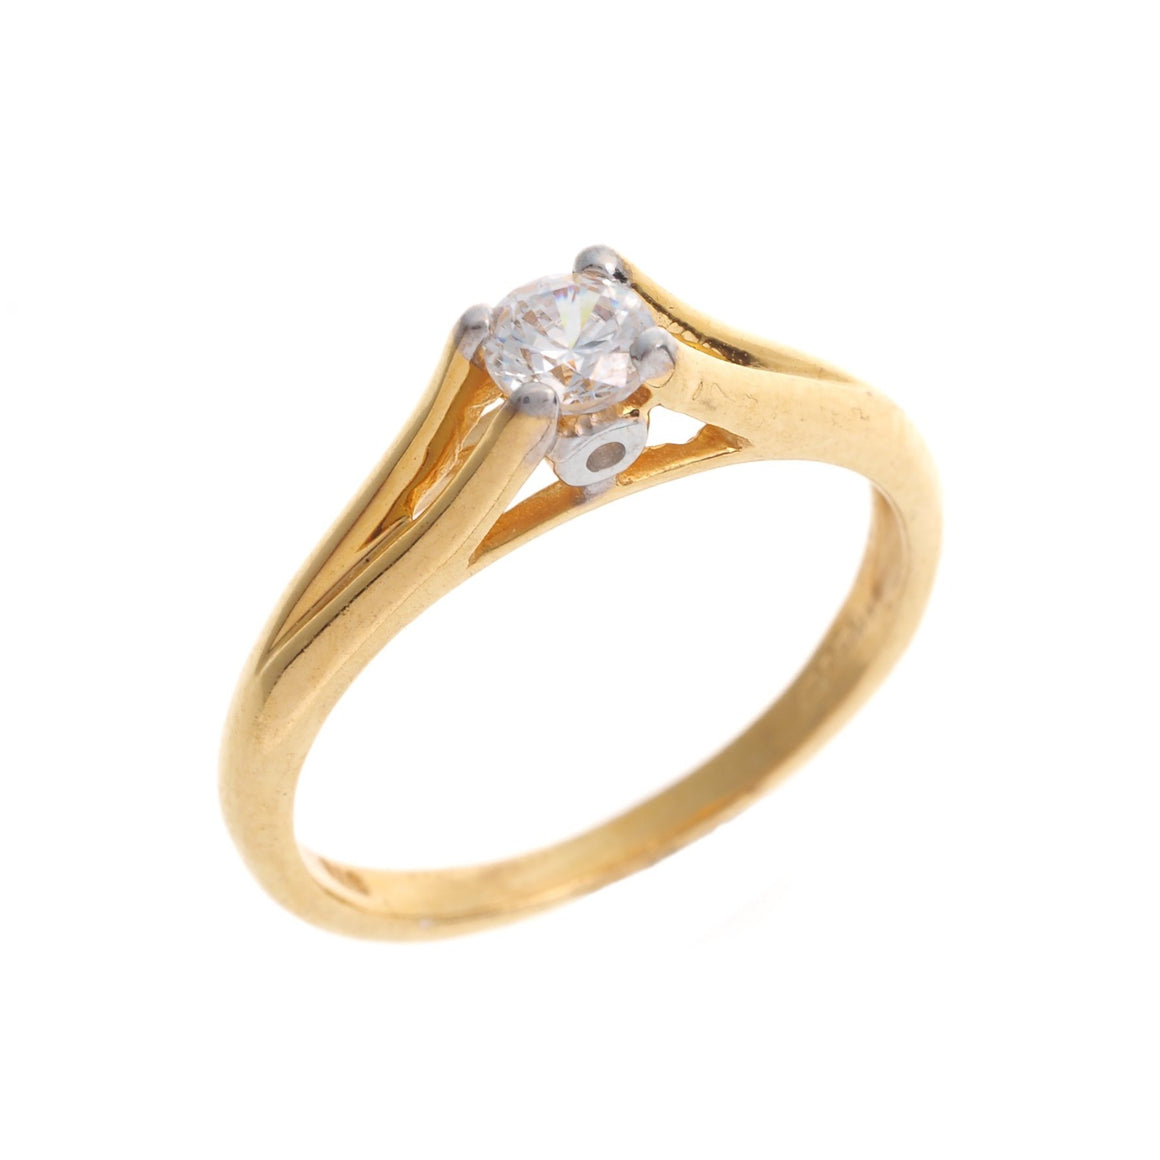 22ct Yellow Gold Cubic Zirconia Engagement Ring (LR70170)